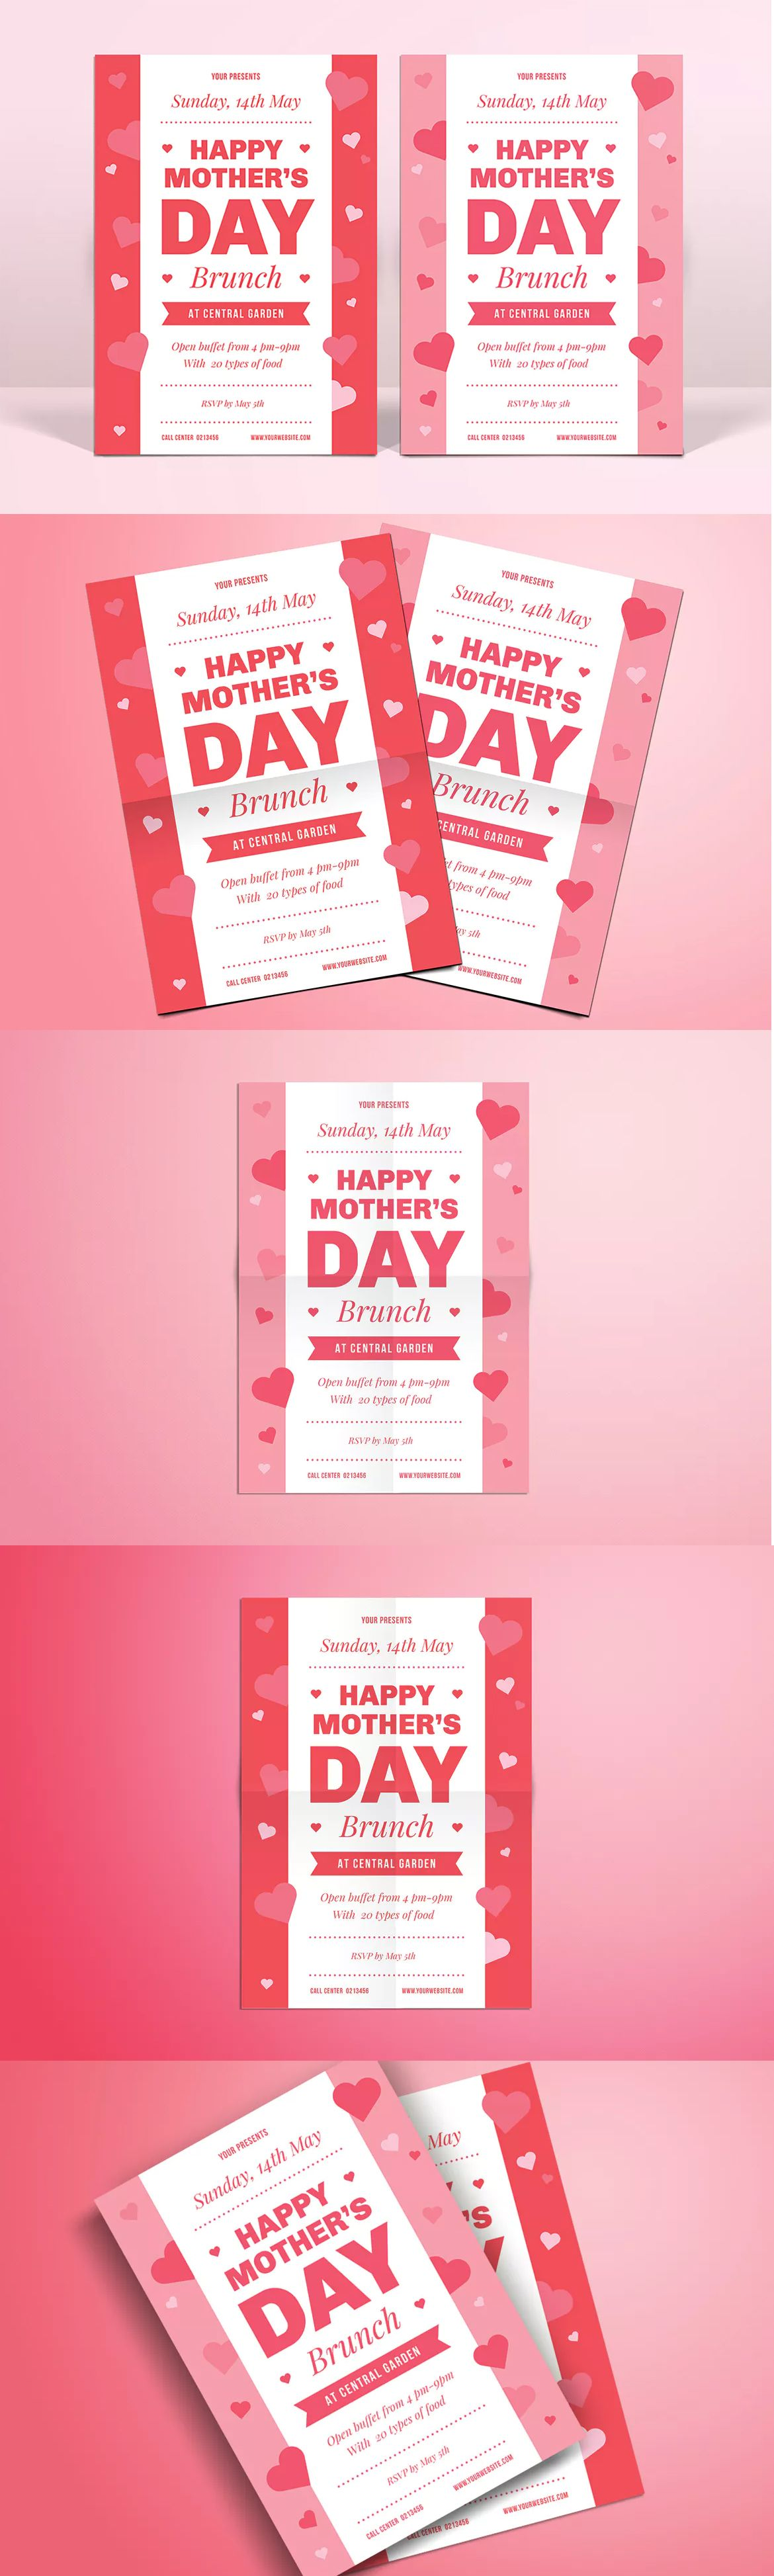 Mothers Day Brunch Flyer Template Ai Psd  A  Flyer Design